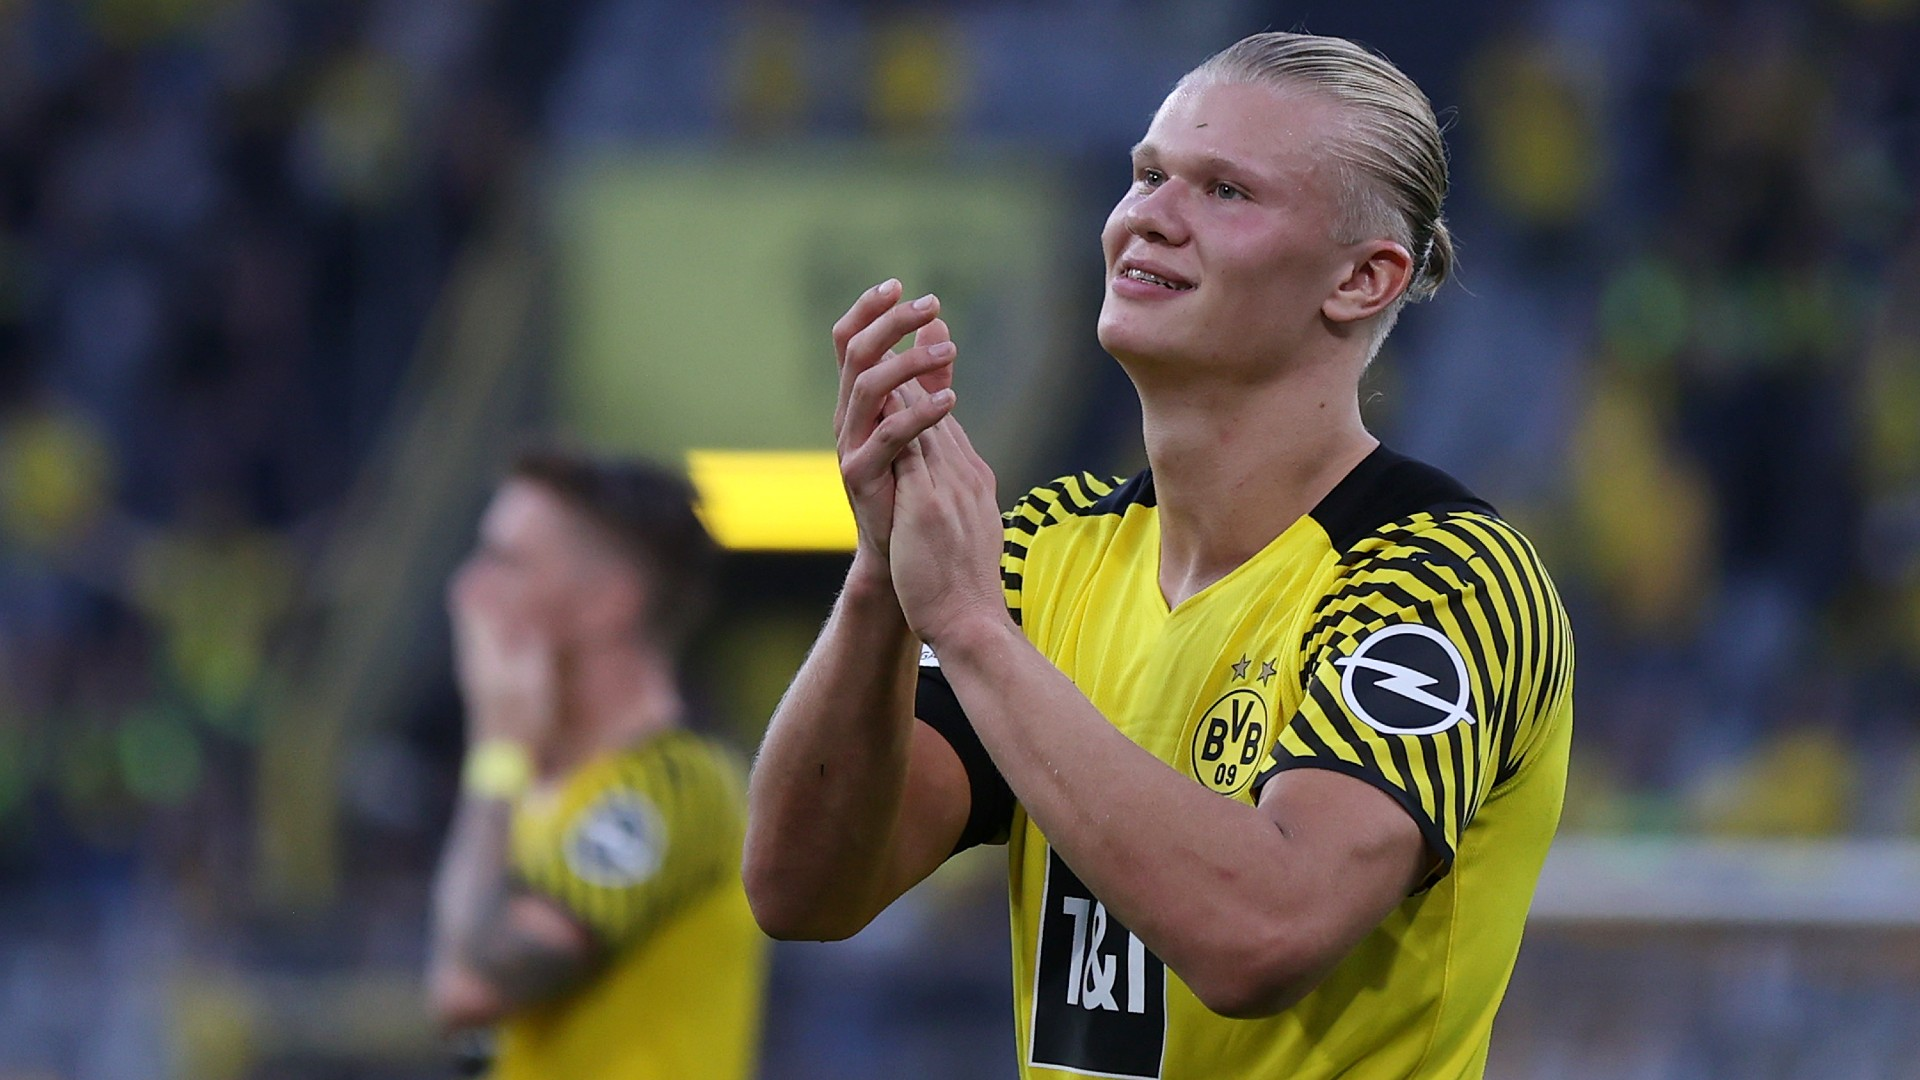 Haaland tipped for Liverpool move by Borussia Dortmund legend Rummenigge